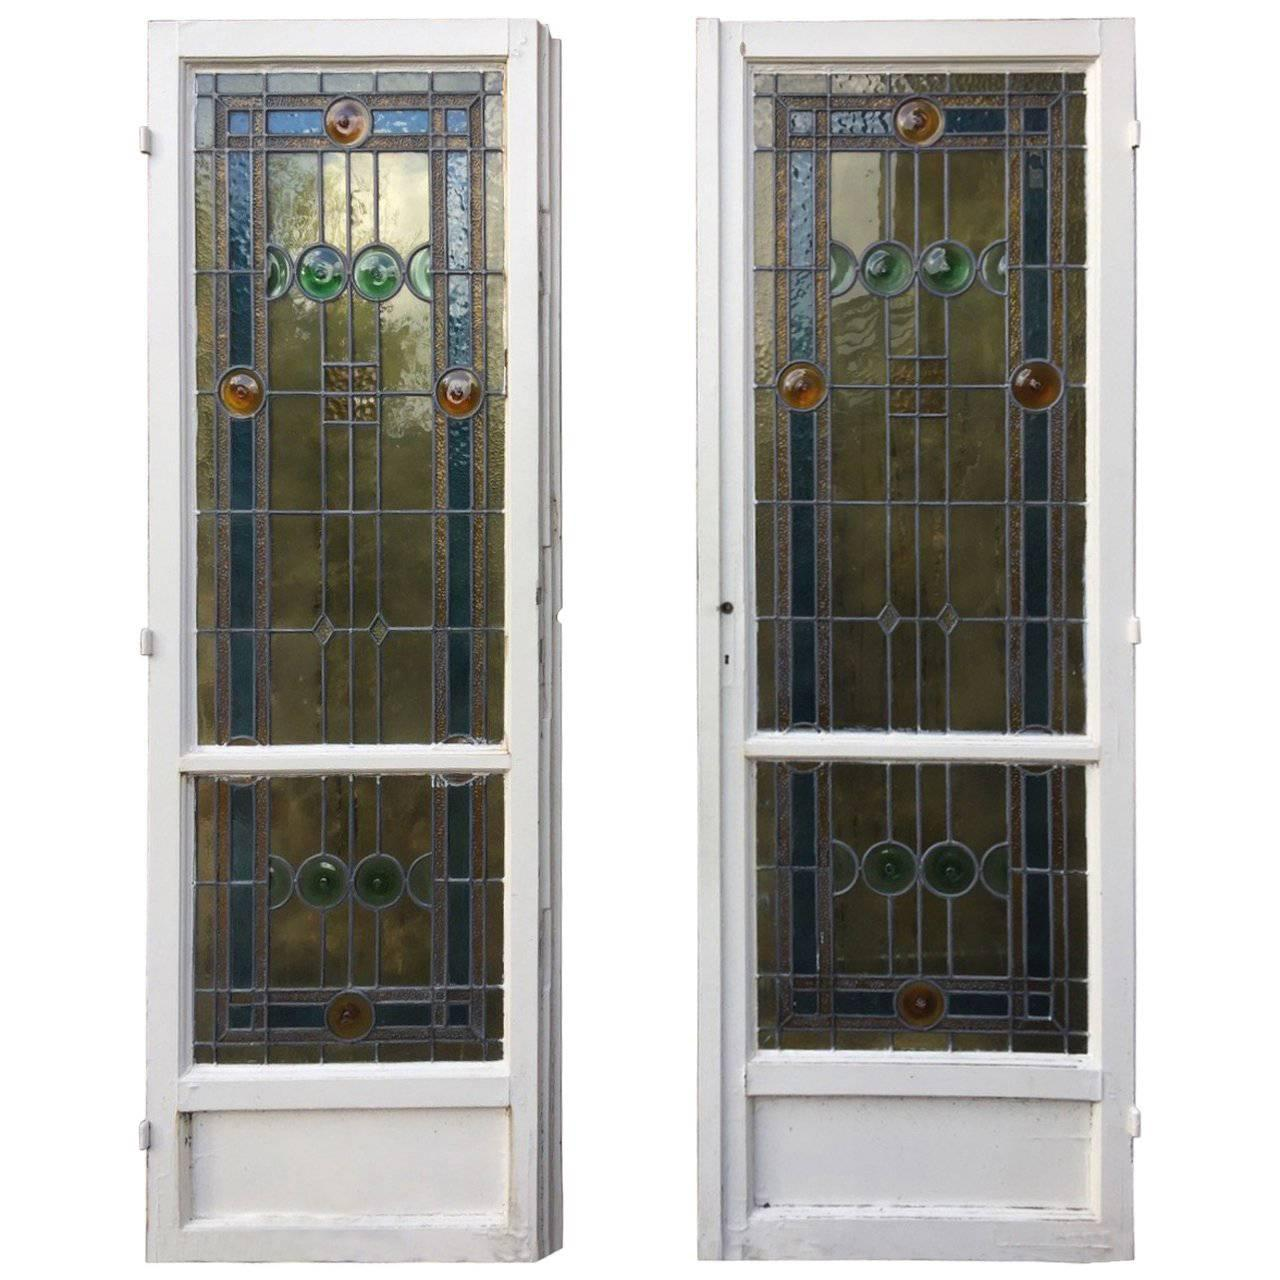 Charming French Art Deco Stained Glass Doors and Windows Set For Sale  sc 1 st  1stDibs & Charming French Art Deco Stained Glass Doors and Windows Set For ...